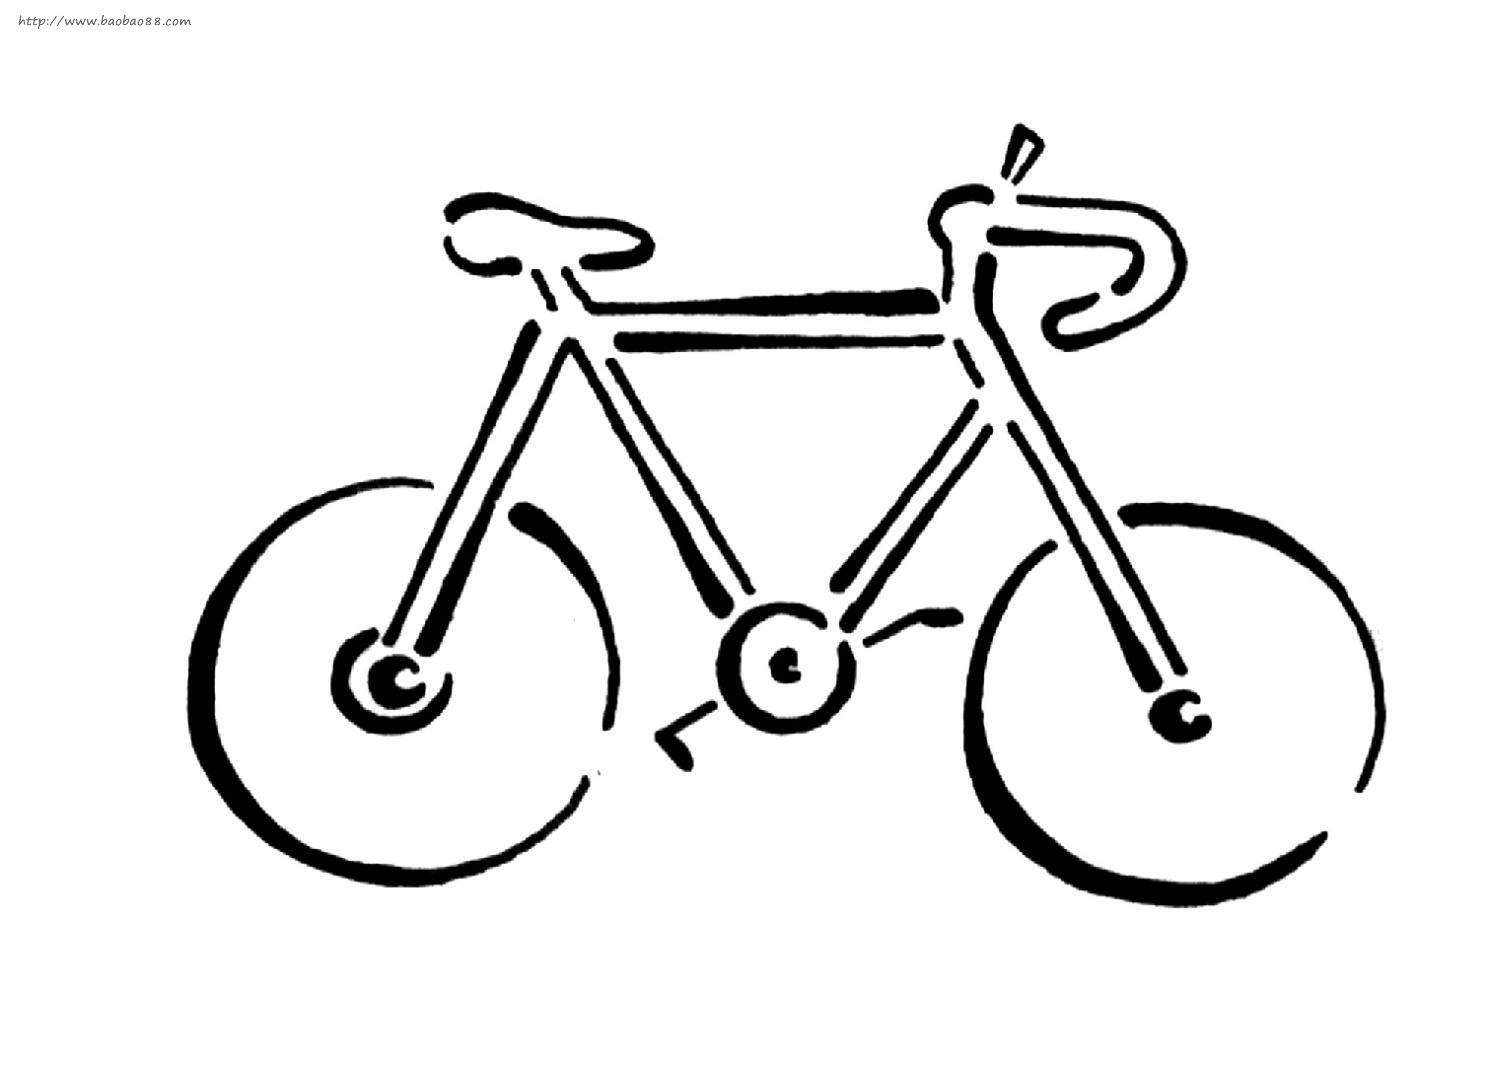 bicycle helmet coloring pages - photo#29